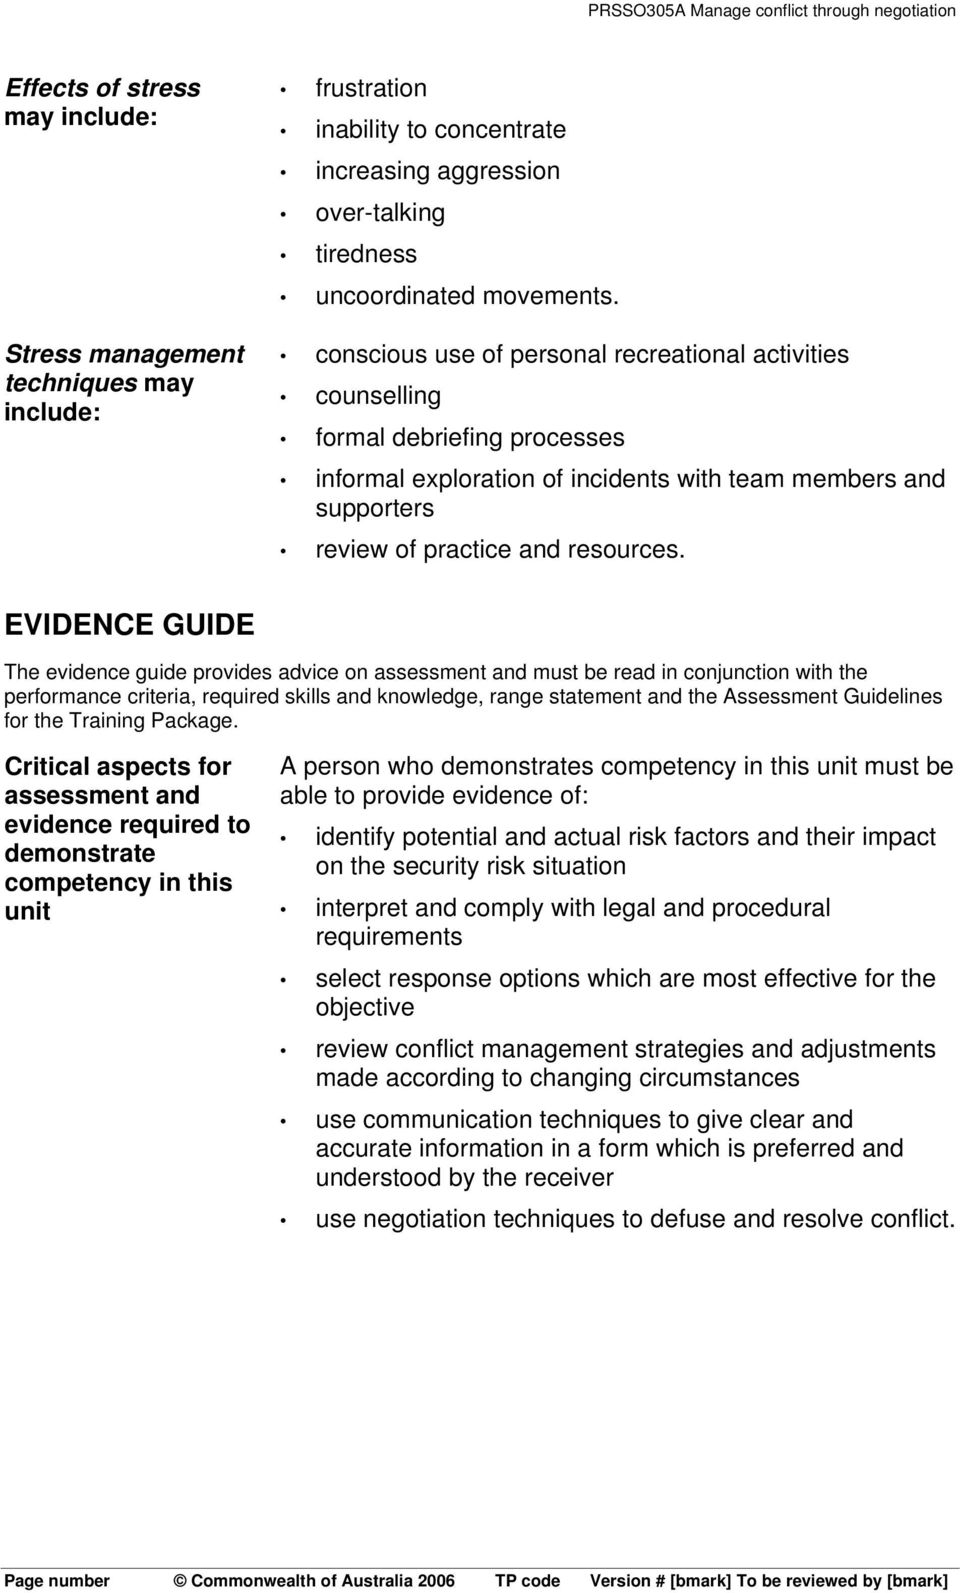 EVIDENCE GUIDE The evidence guide provides advice on assessment and must be read in conjunction with the performance criteria, required skills and knowledge, range statement and the Assessment